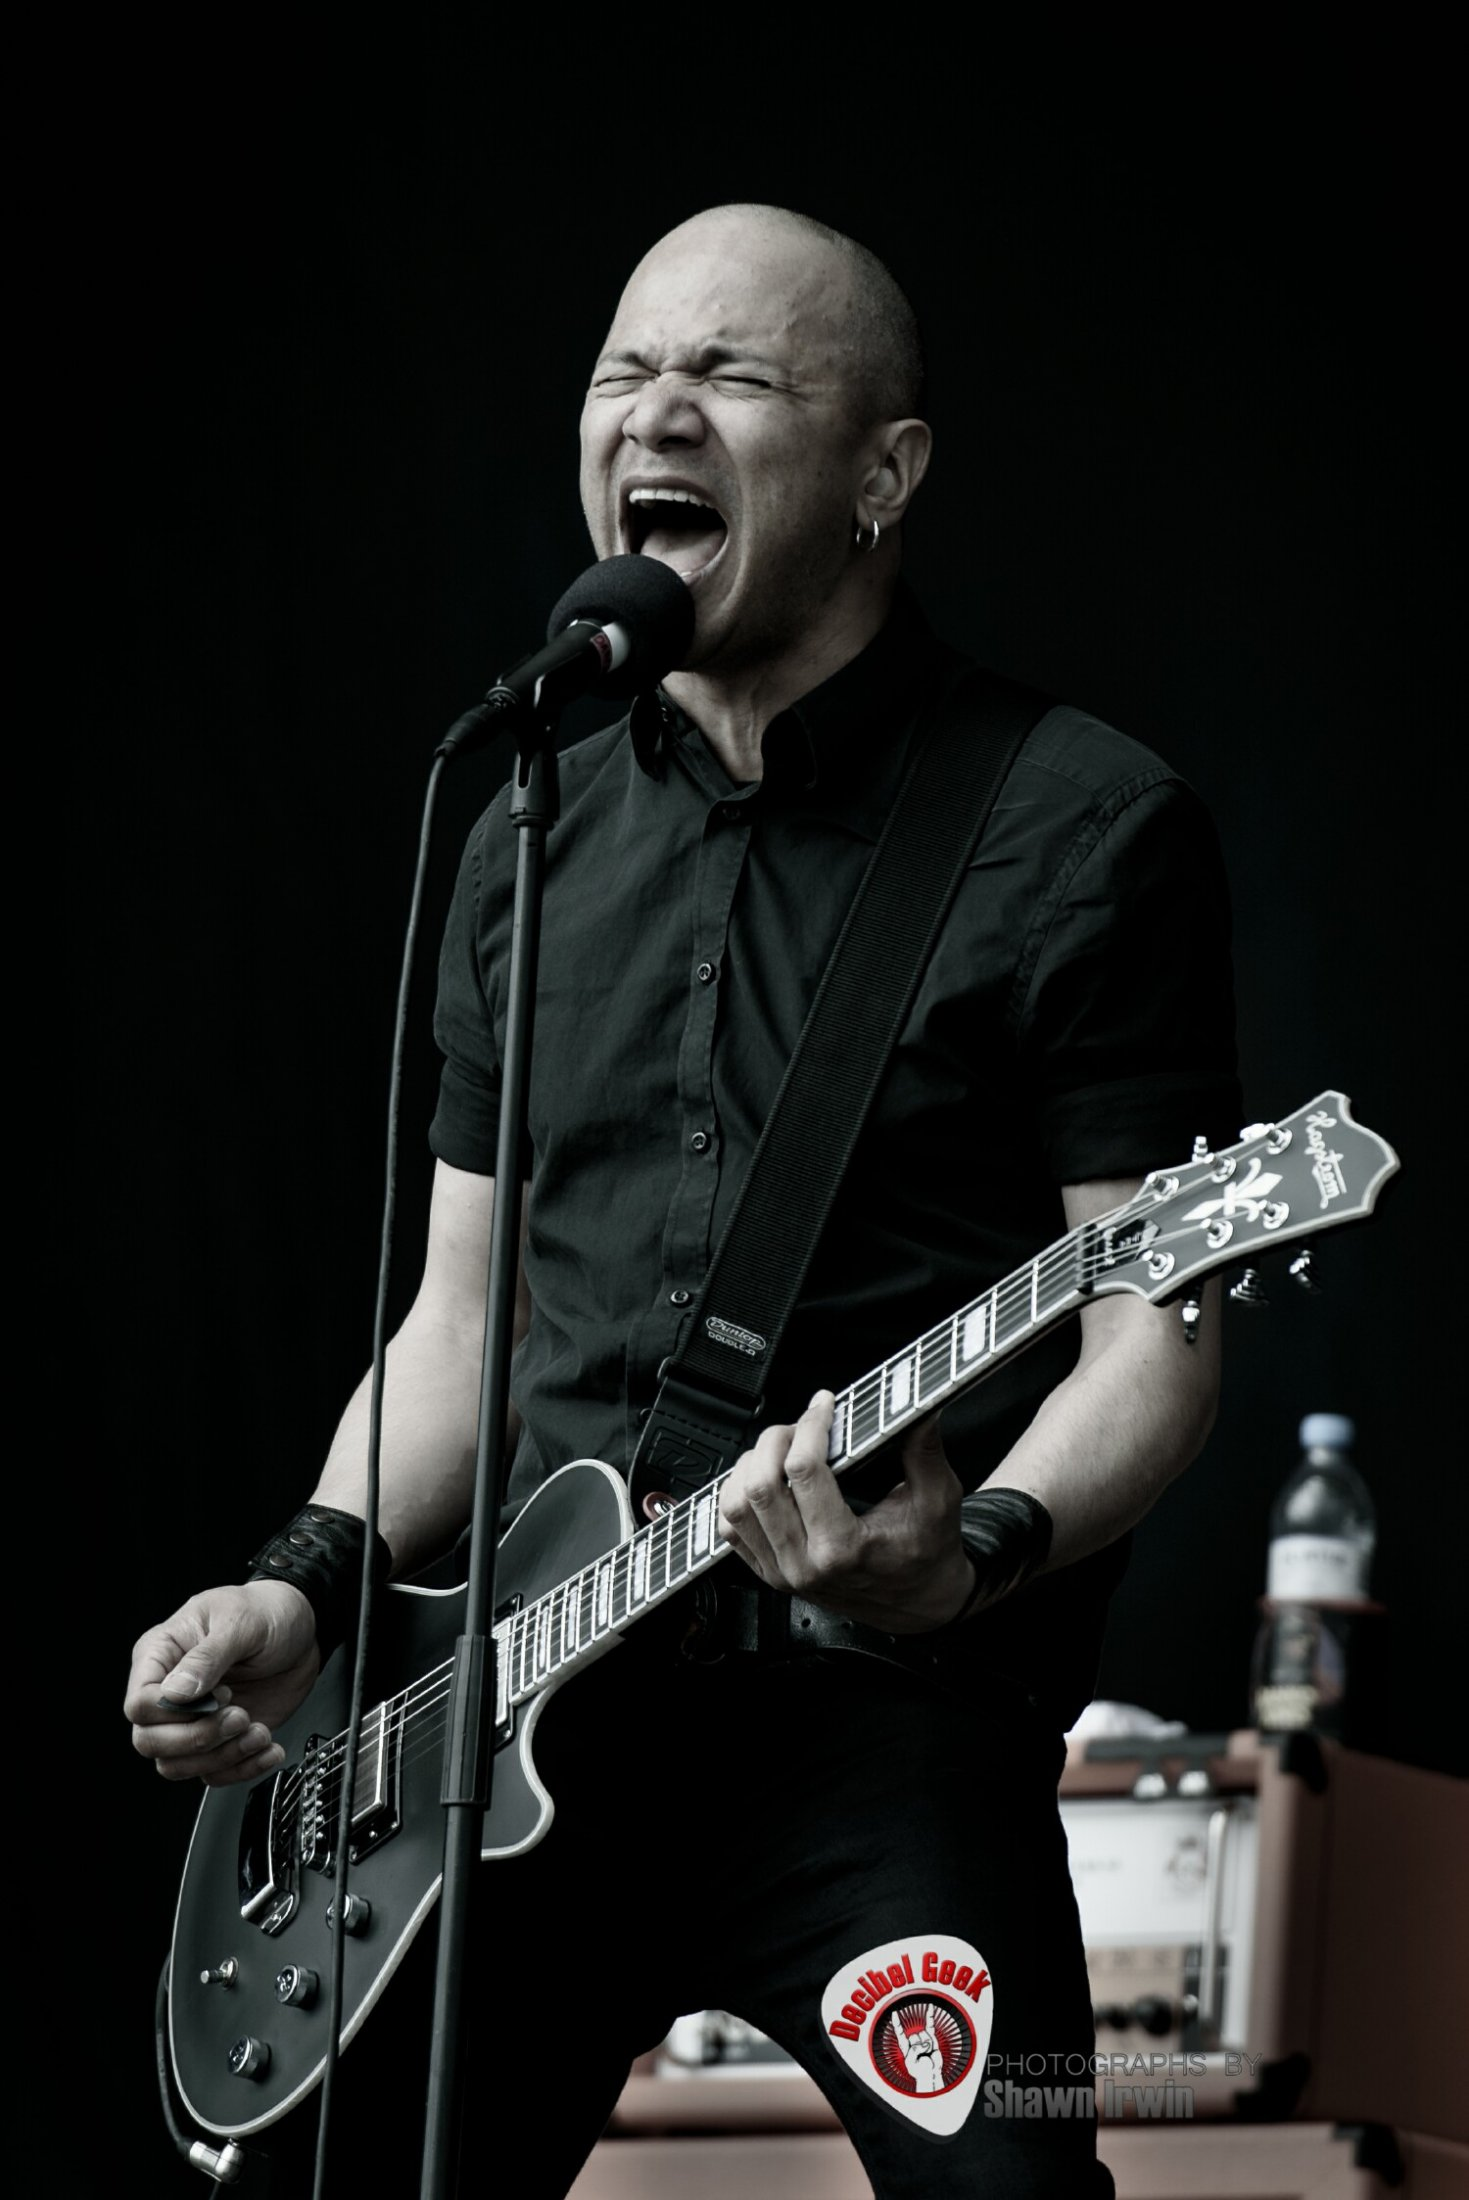 Danko Jones #5-SRF 2019-Shawn Irwin